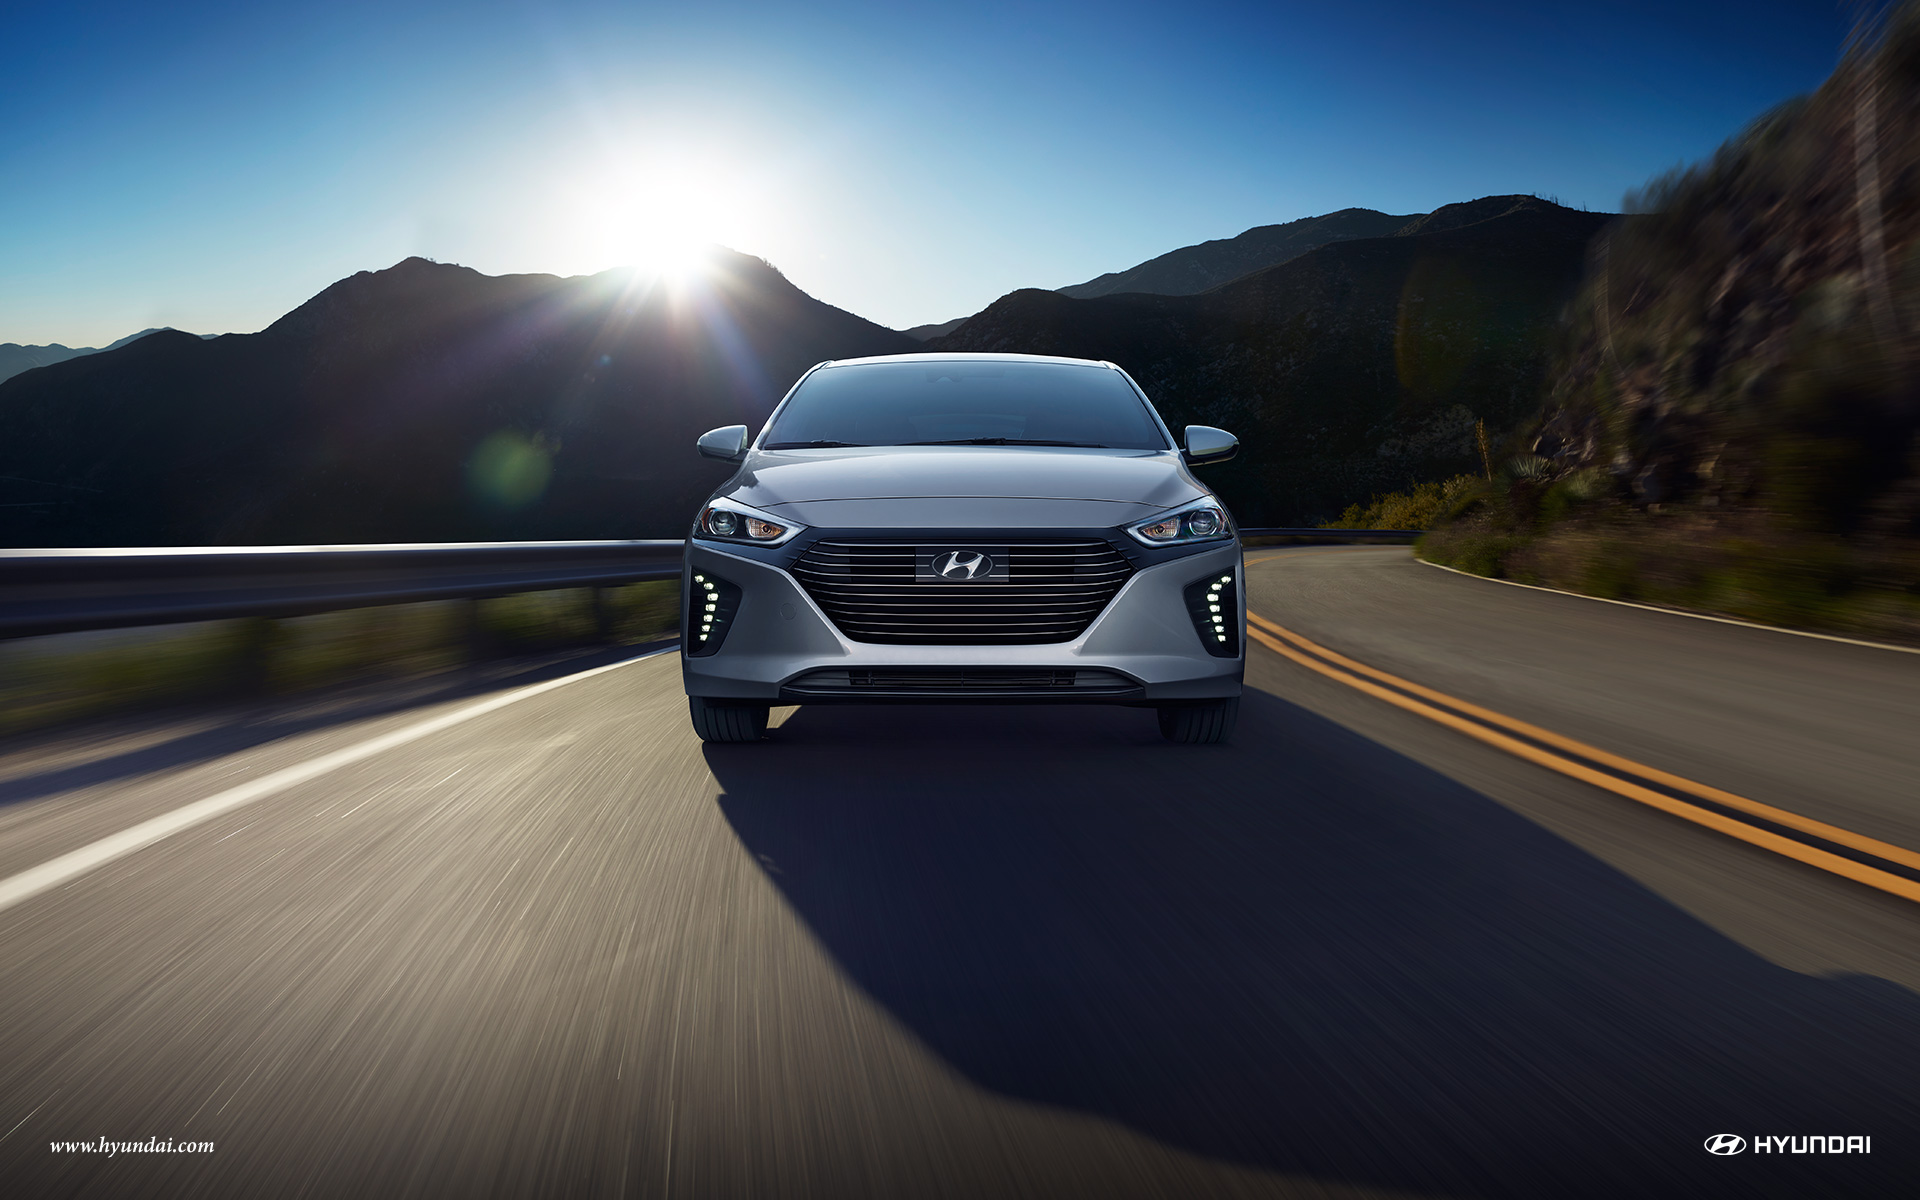 sale new for and specials hyundai pathway ioniq finance on ottawa lease